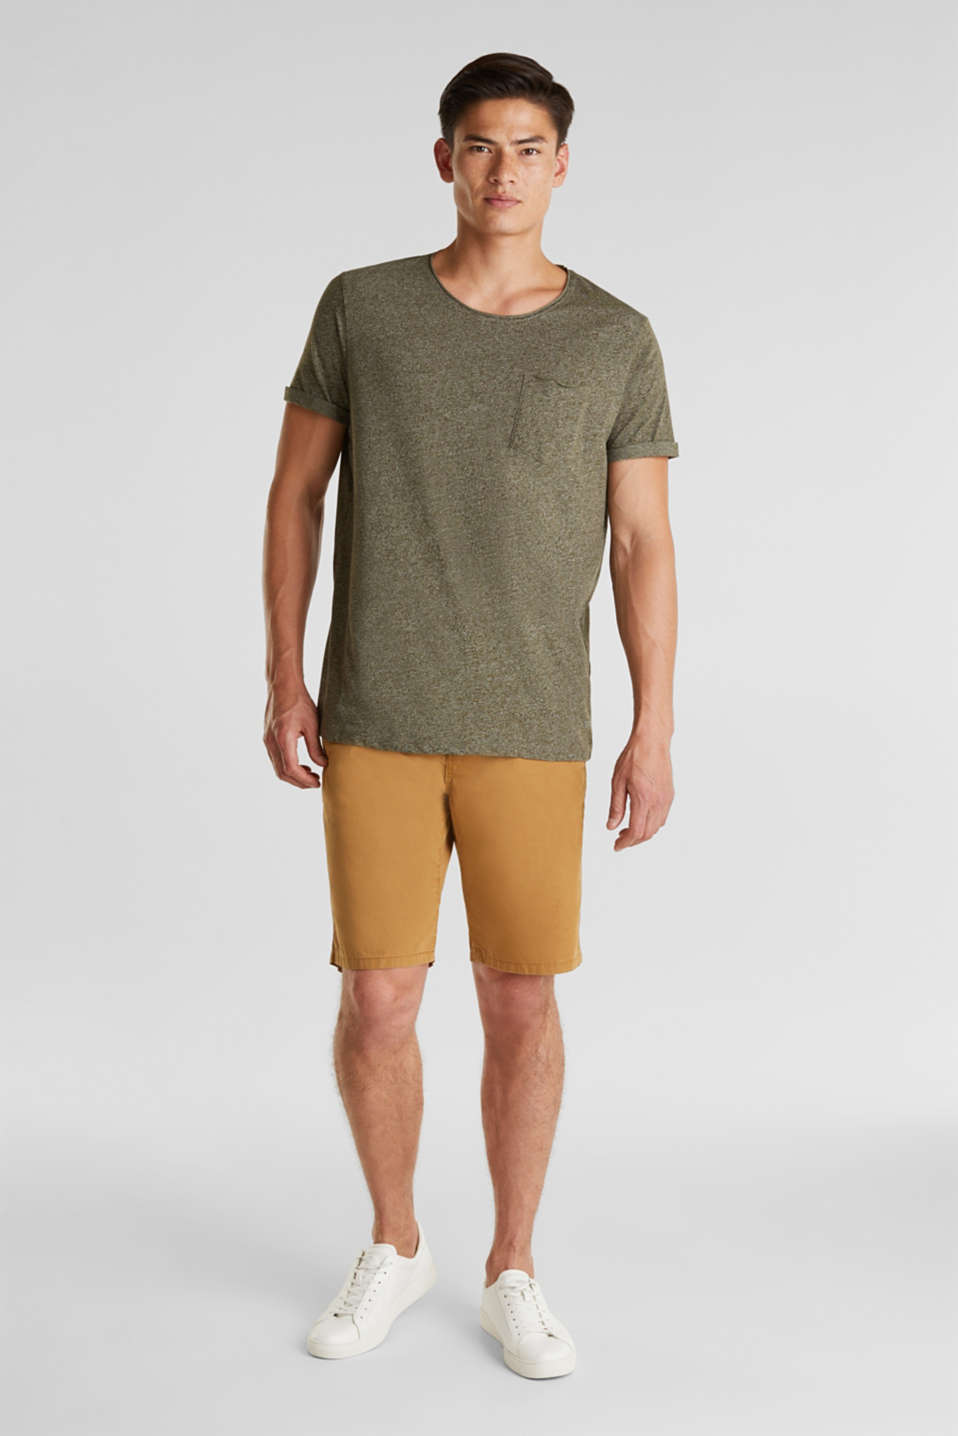 Jersey T-shirt in a casual look, OLIVE 5, detail image number 2